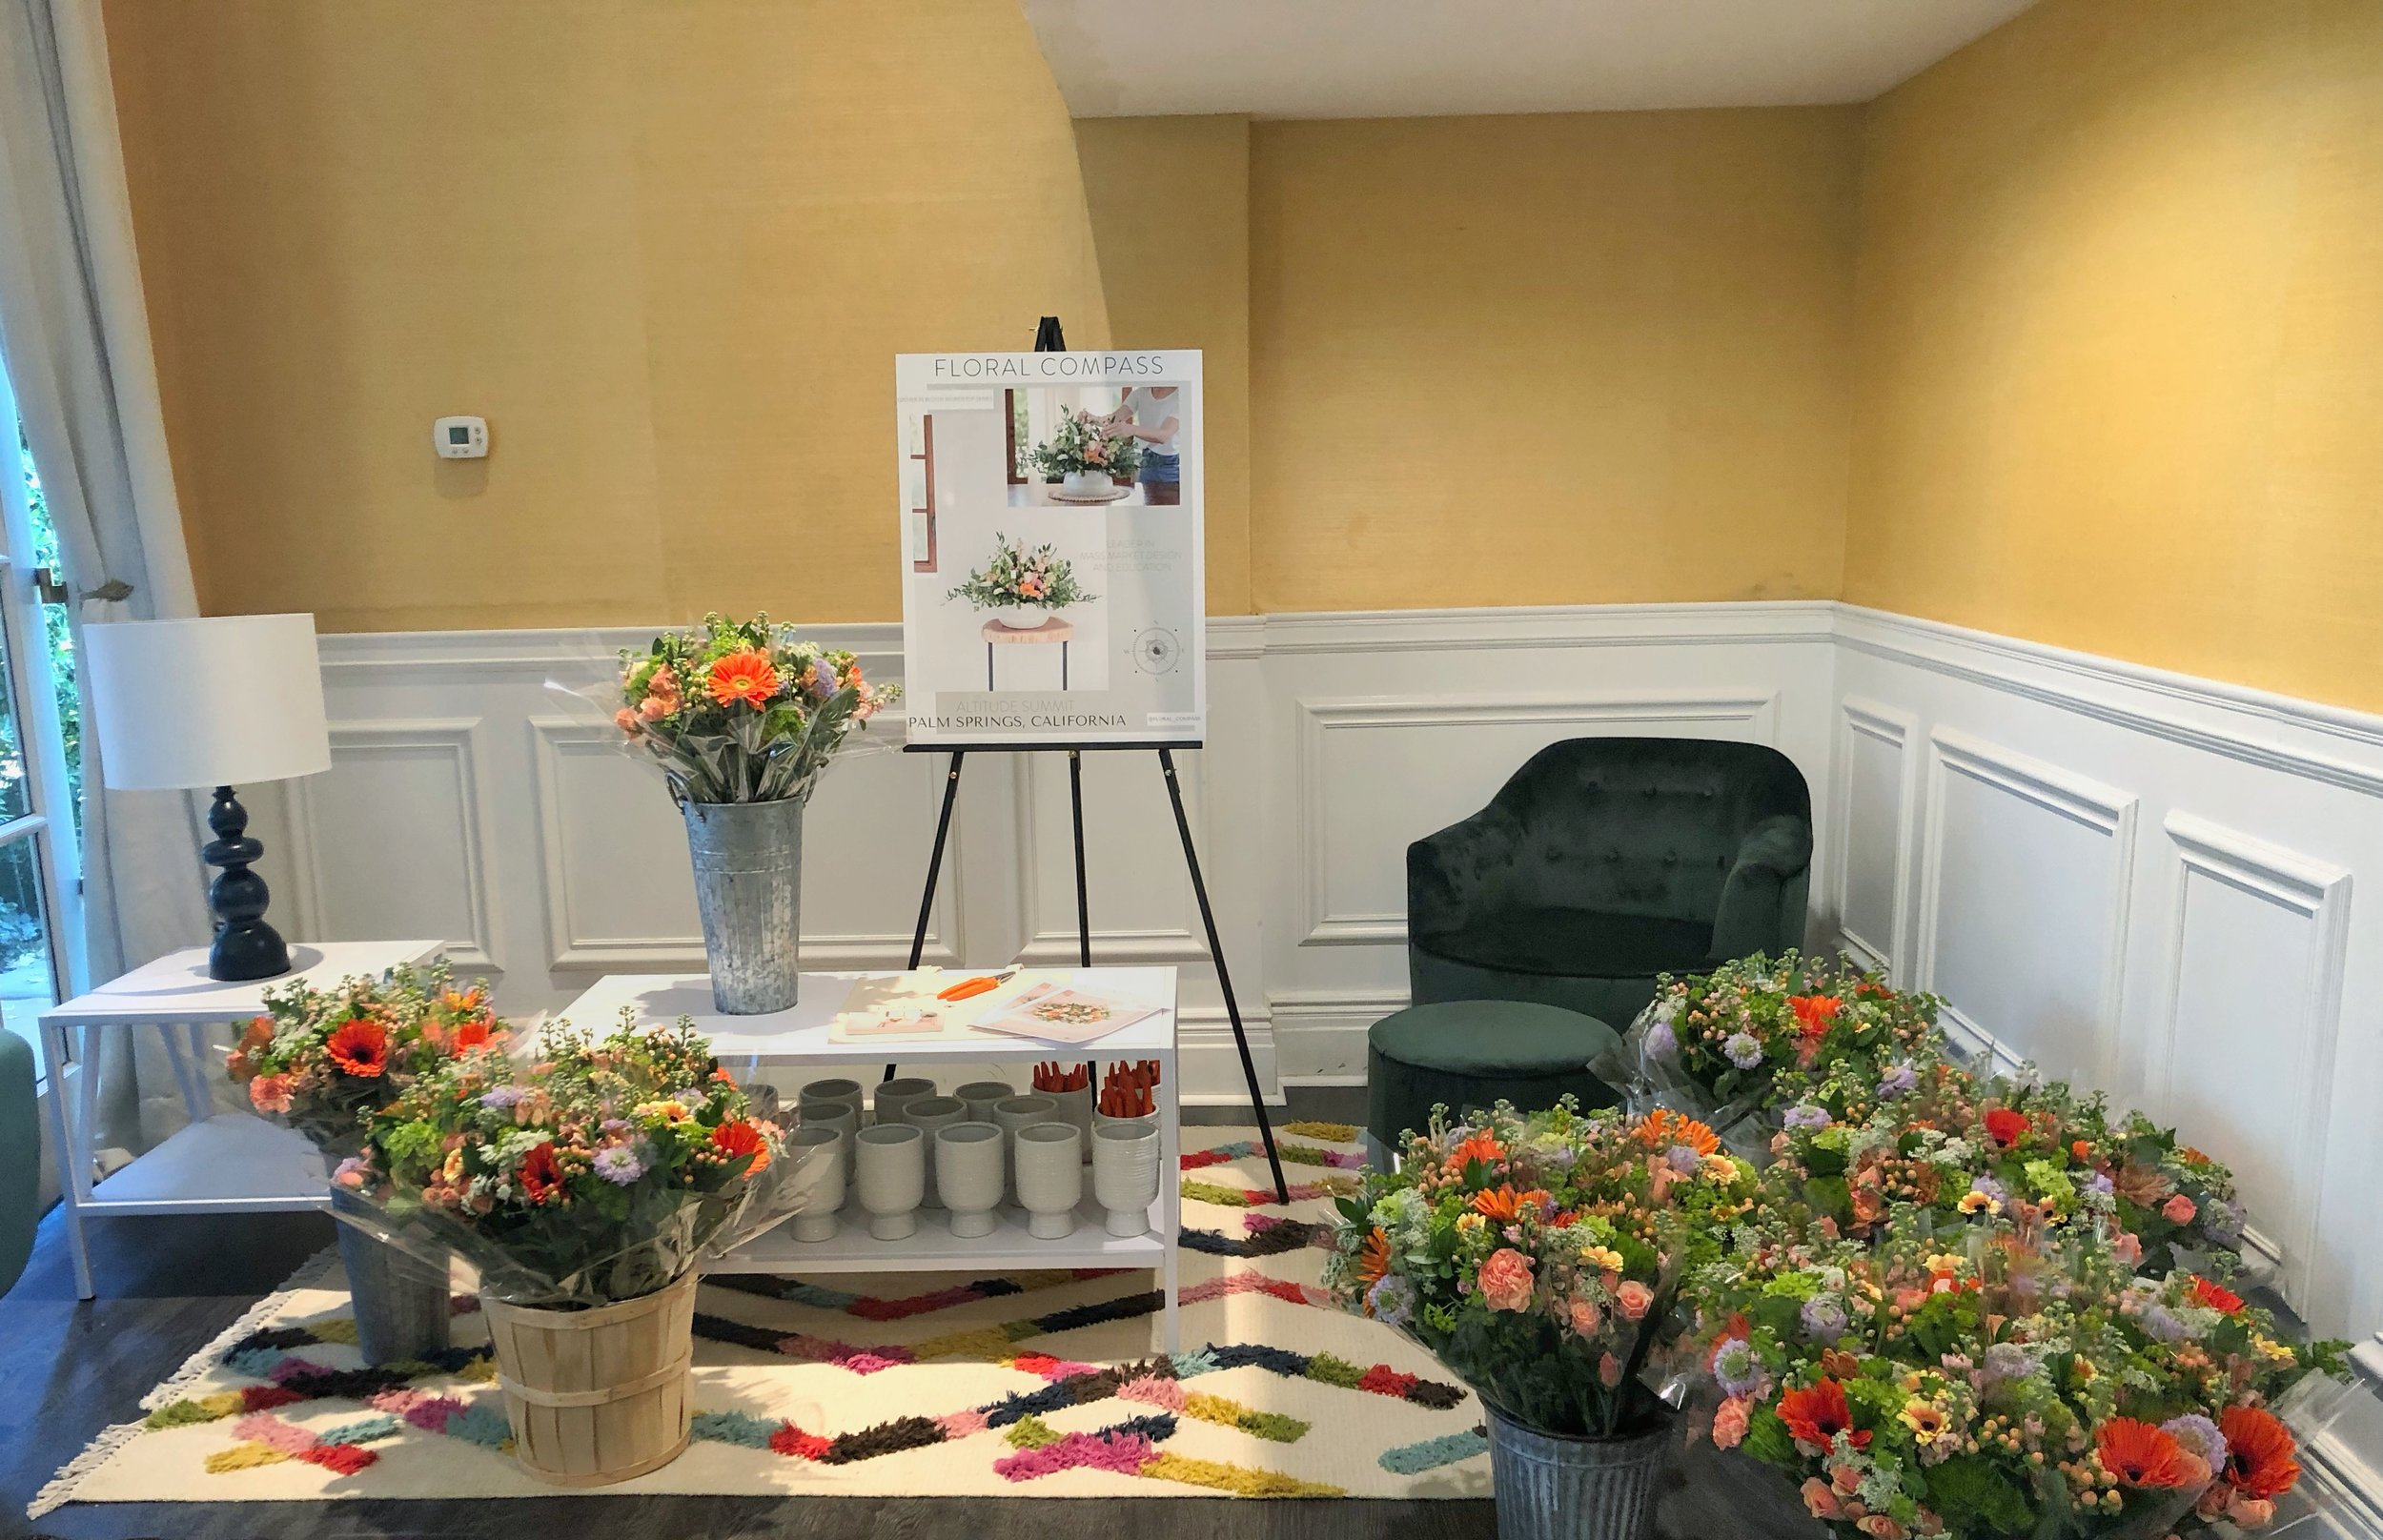 Amazon Home and Novogratz Floral Workshop with Floral Compass at the Parker Hotel in Palm Springs